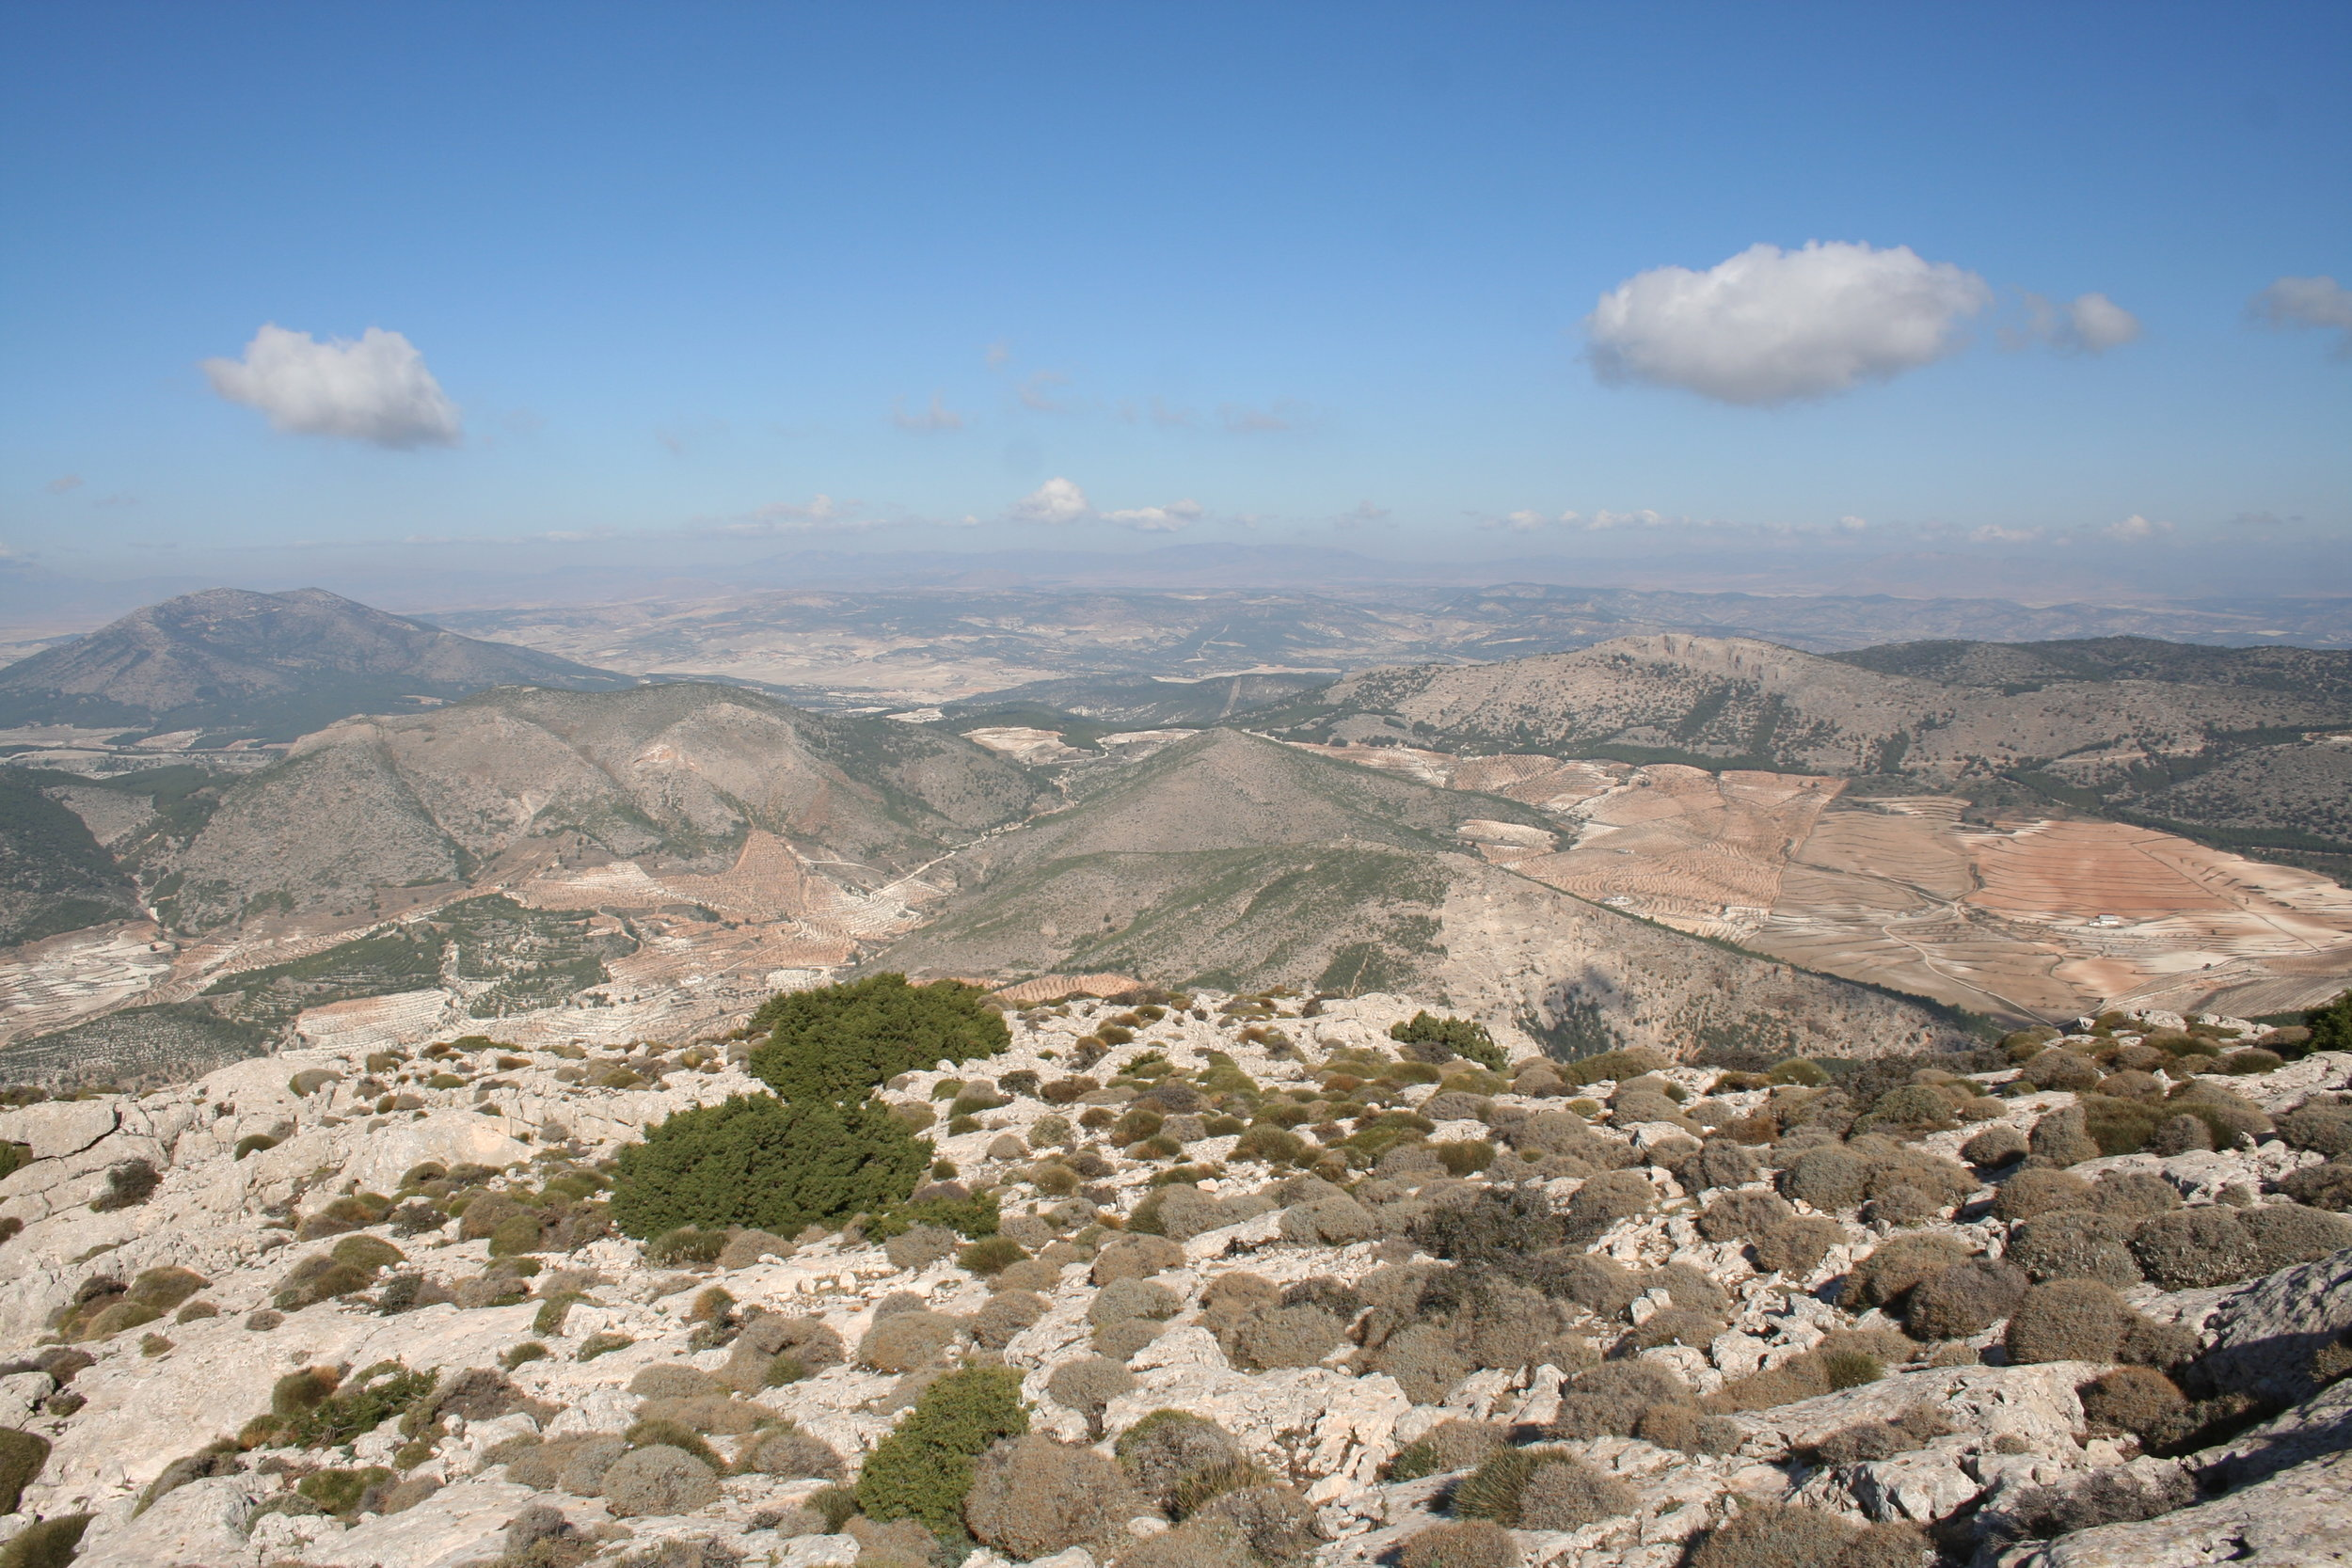 The view from the top of the Sierra Gigante towards Los Gázquez. The house is at the bottom of the fire break you can see in the centre of the photograph.